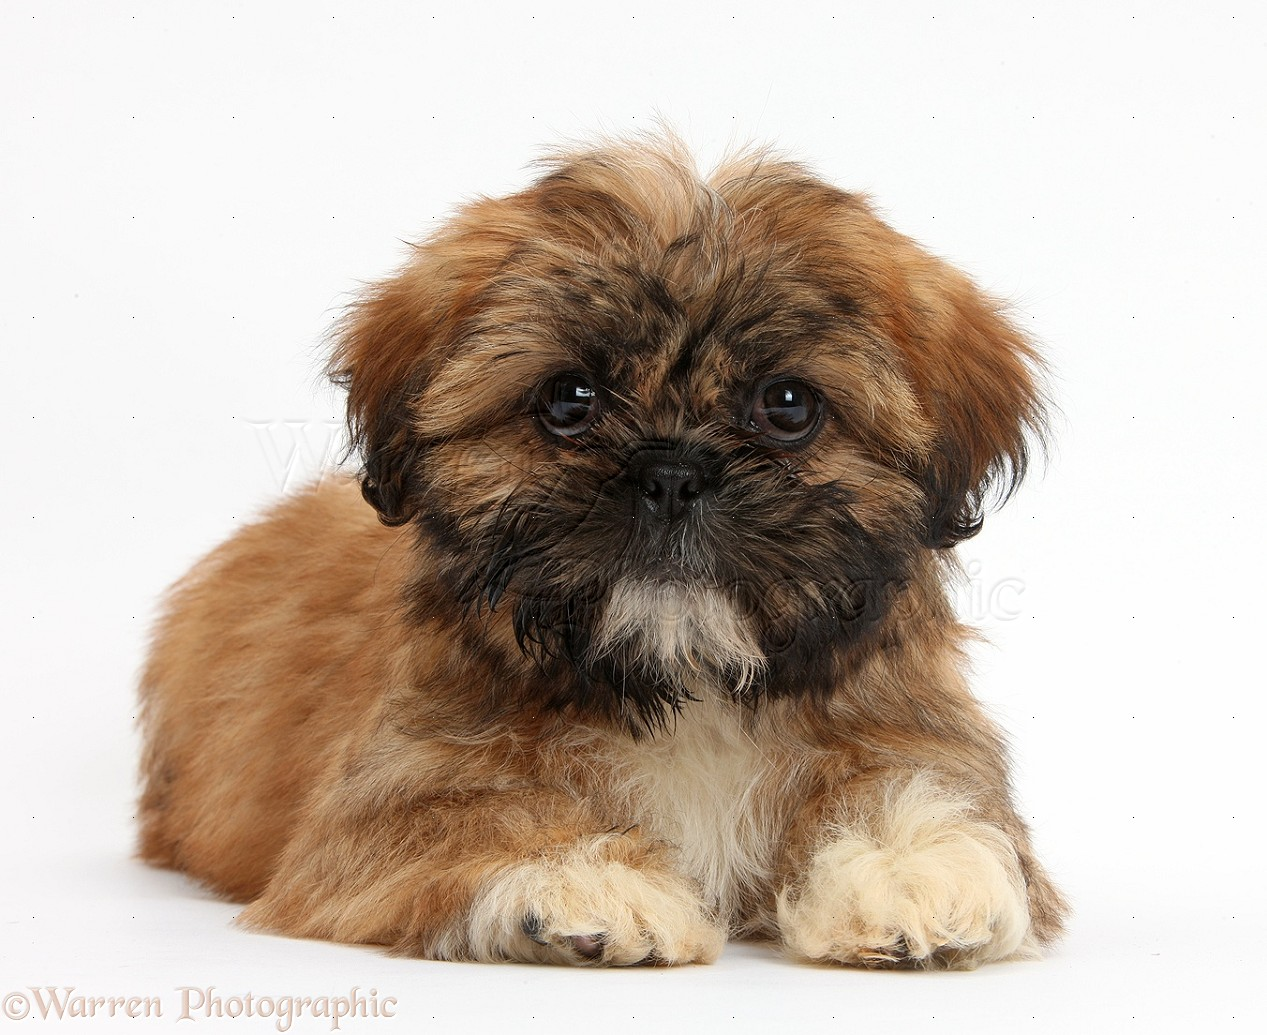 Dog Brown Shih Tzu Pup Lying With Head Up Photo Wp38154